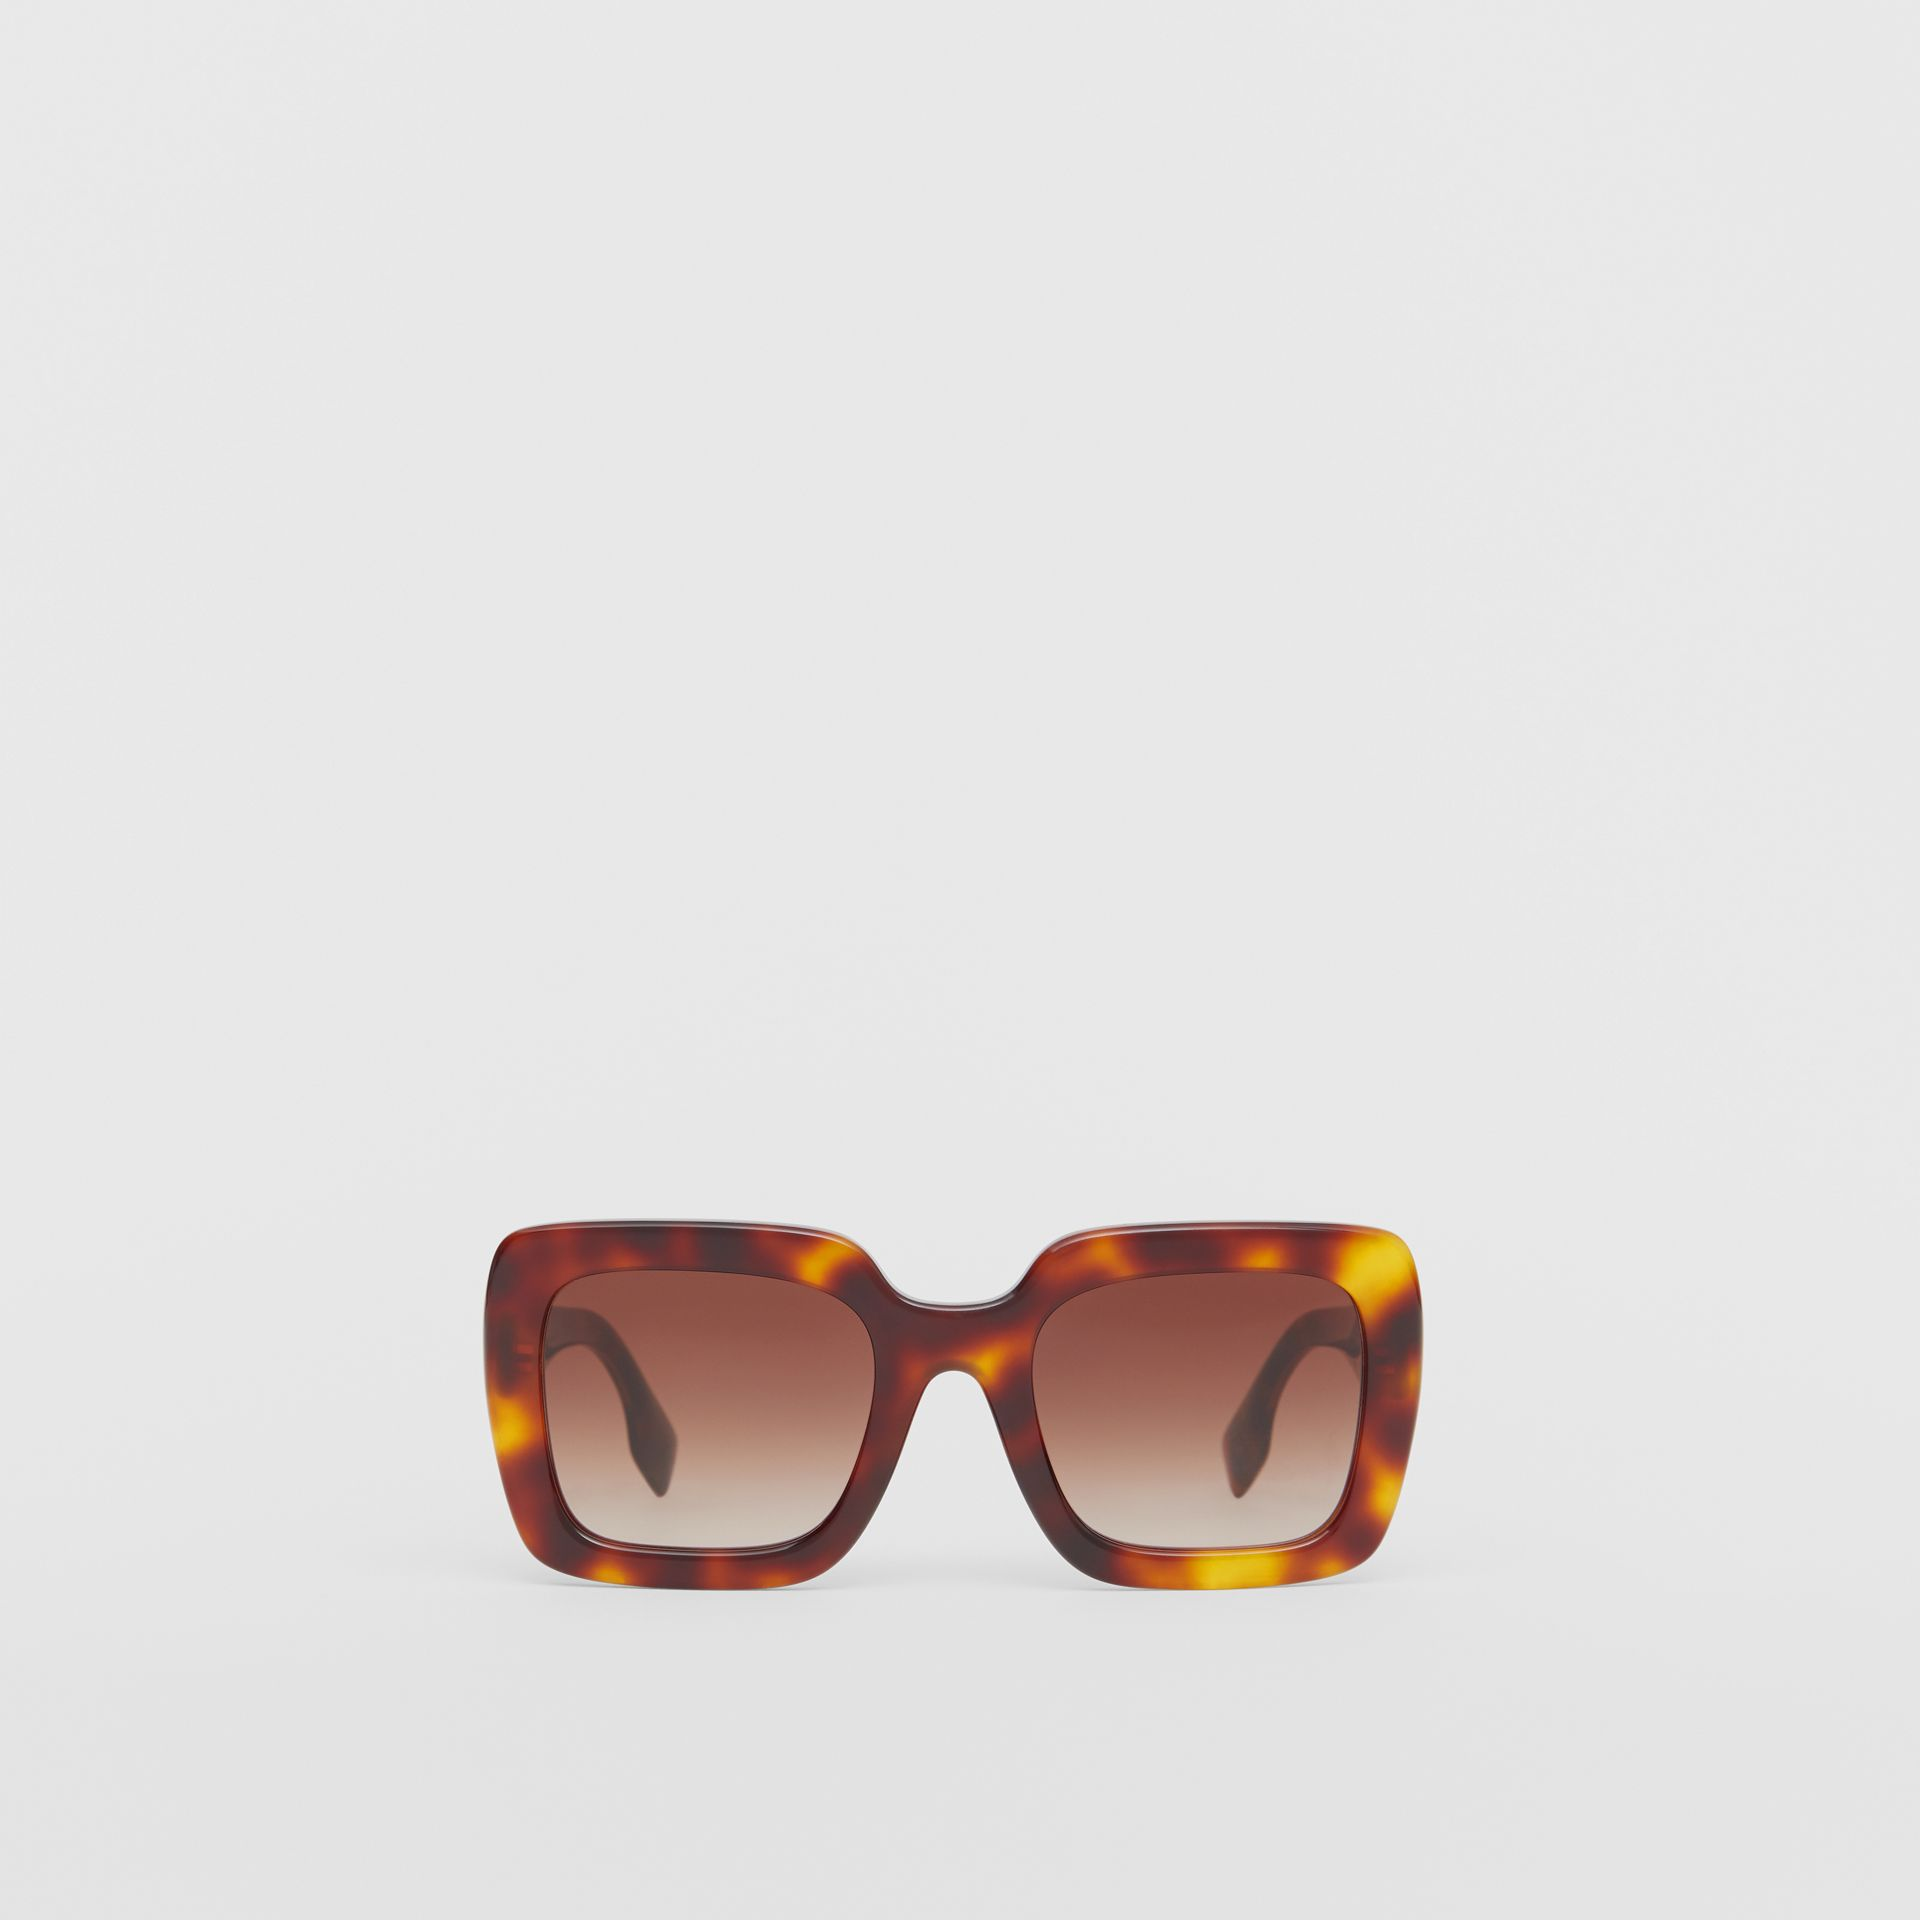 Oversized Square Frame Sunglasses in Tortoiseshell - Women | Burberry Canada - gallery image 0